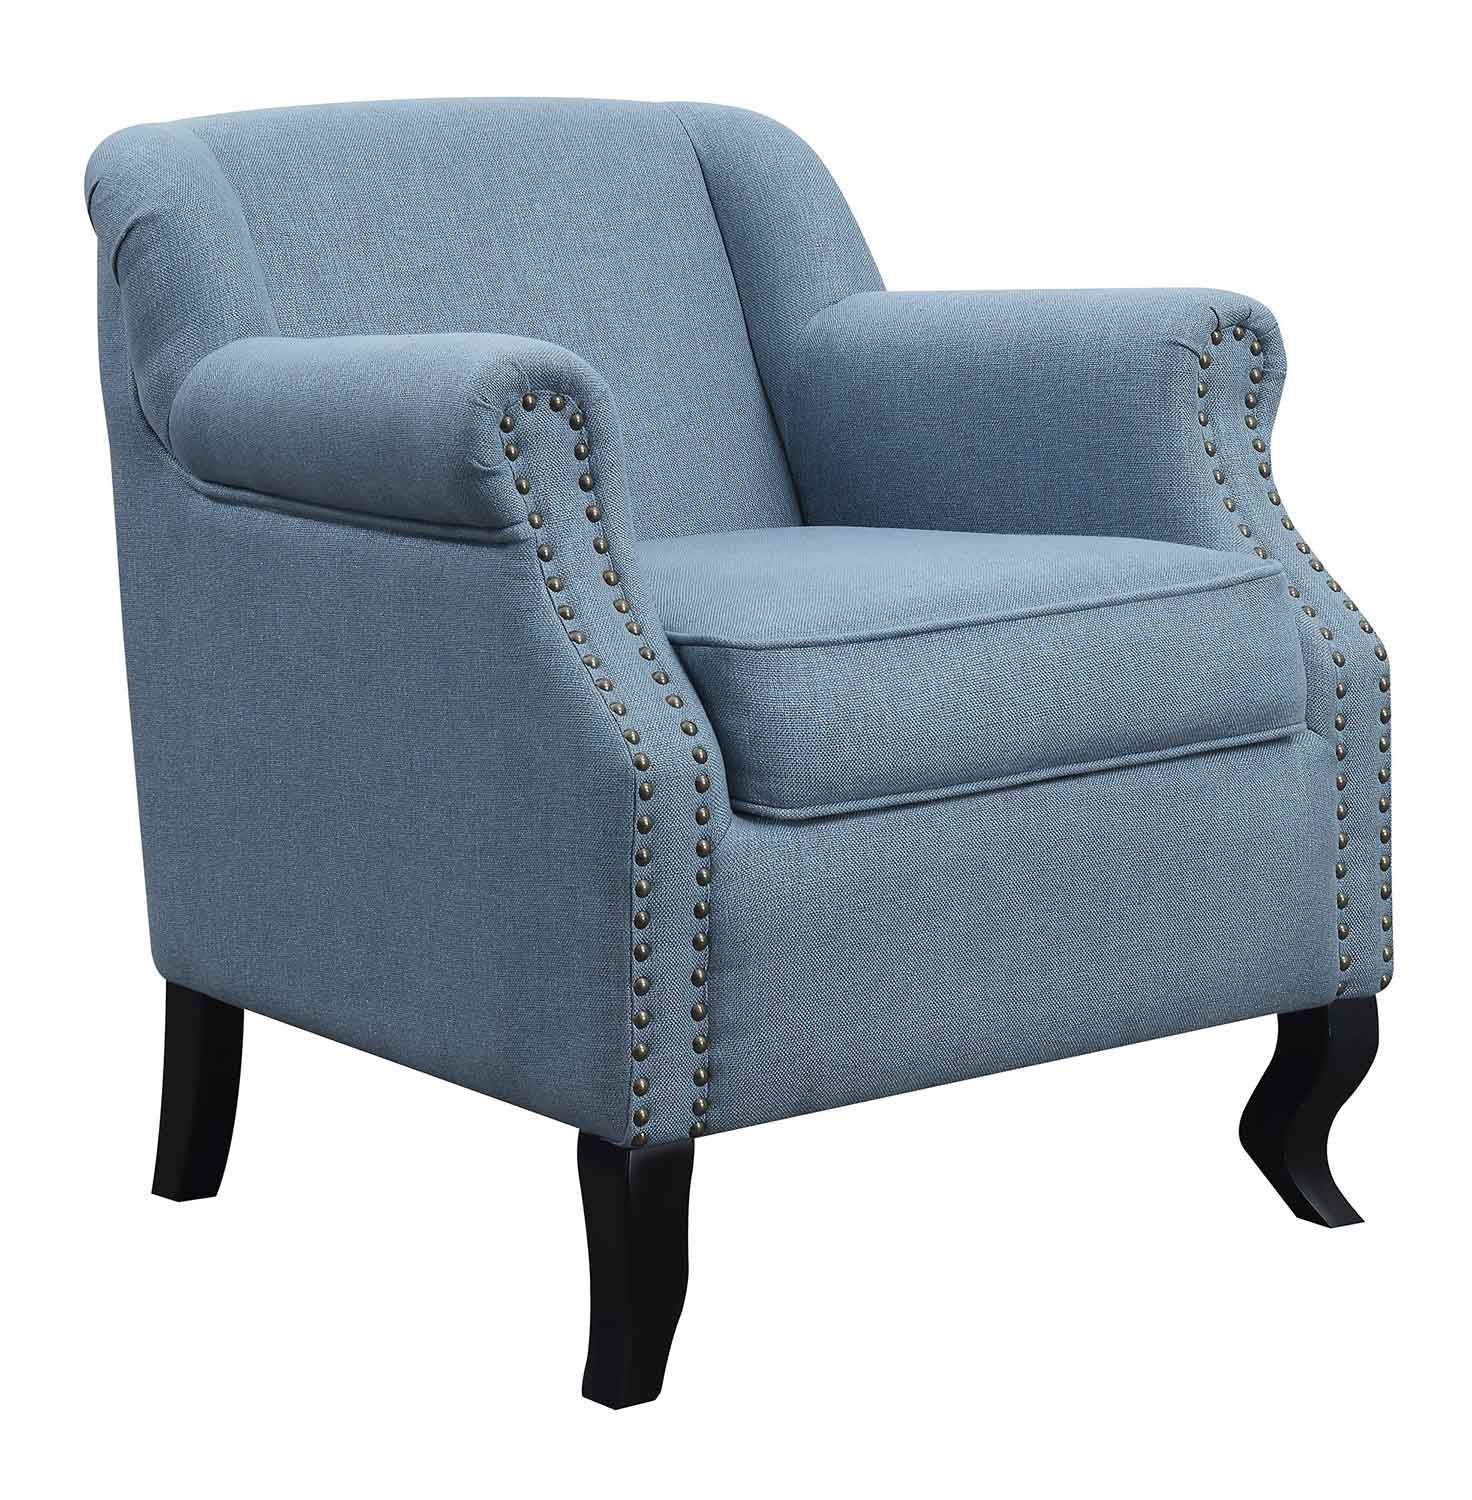 Coaster 903360 Accent Chair - Light Blue